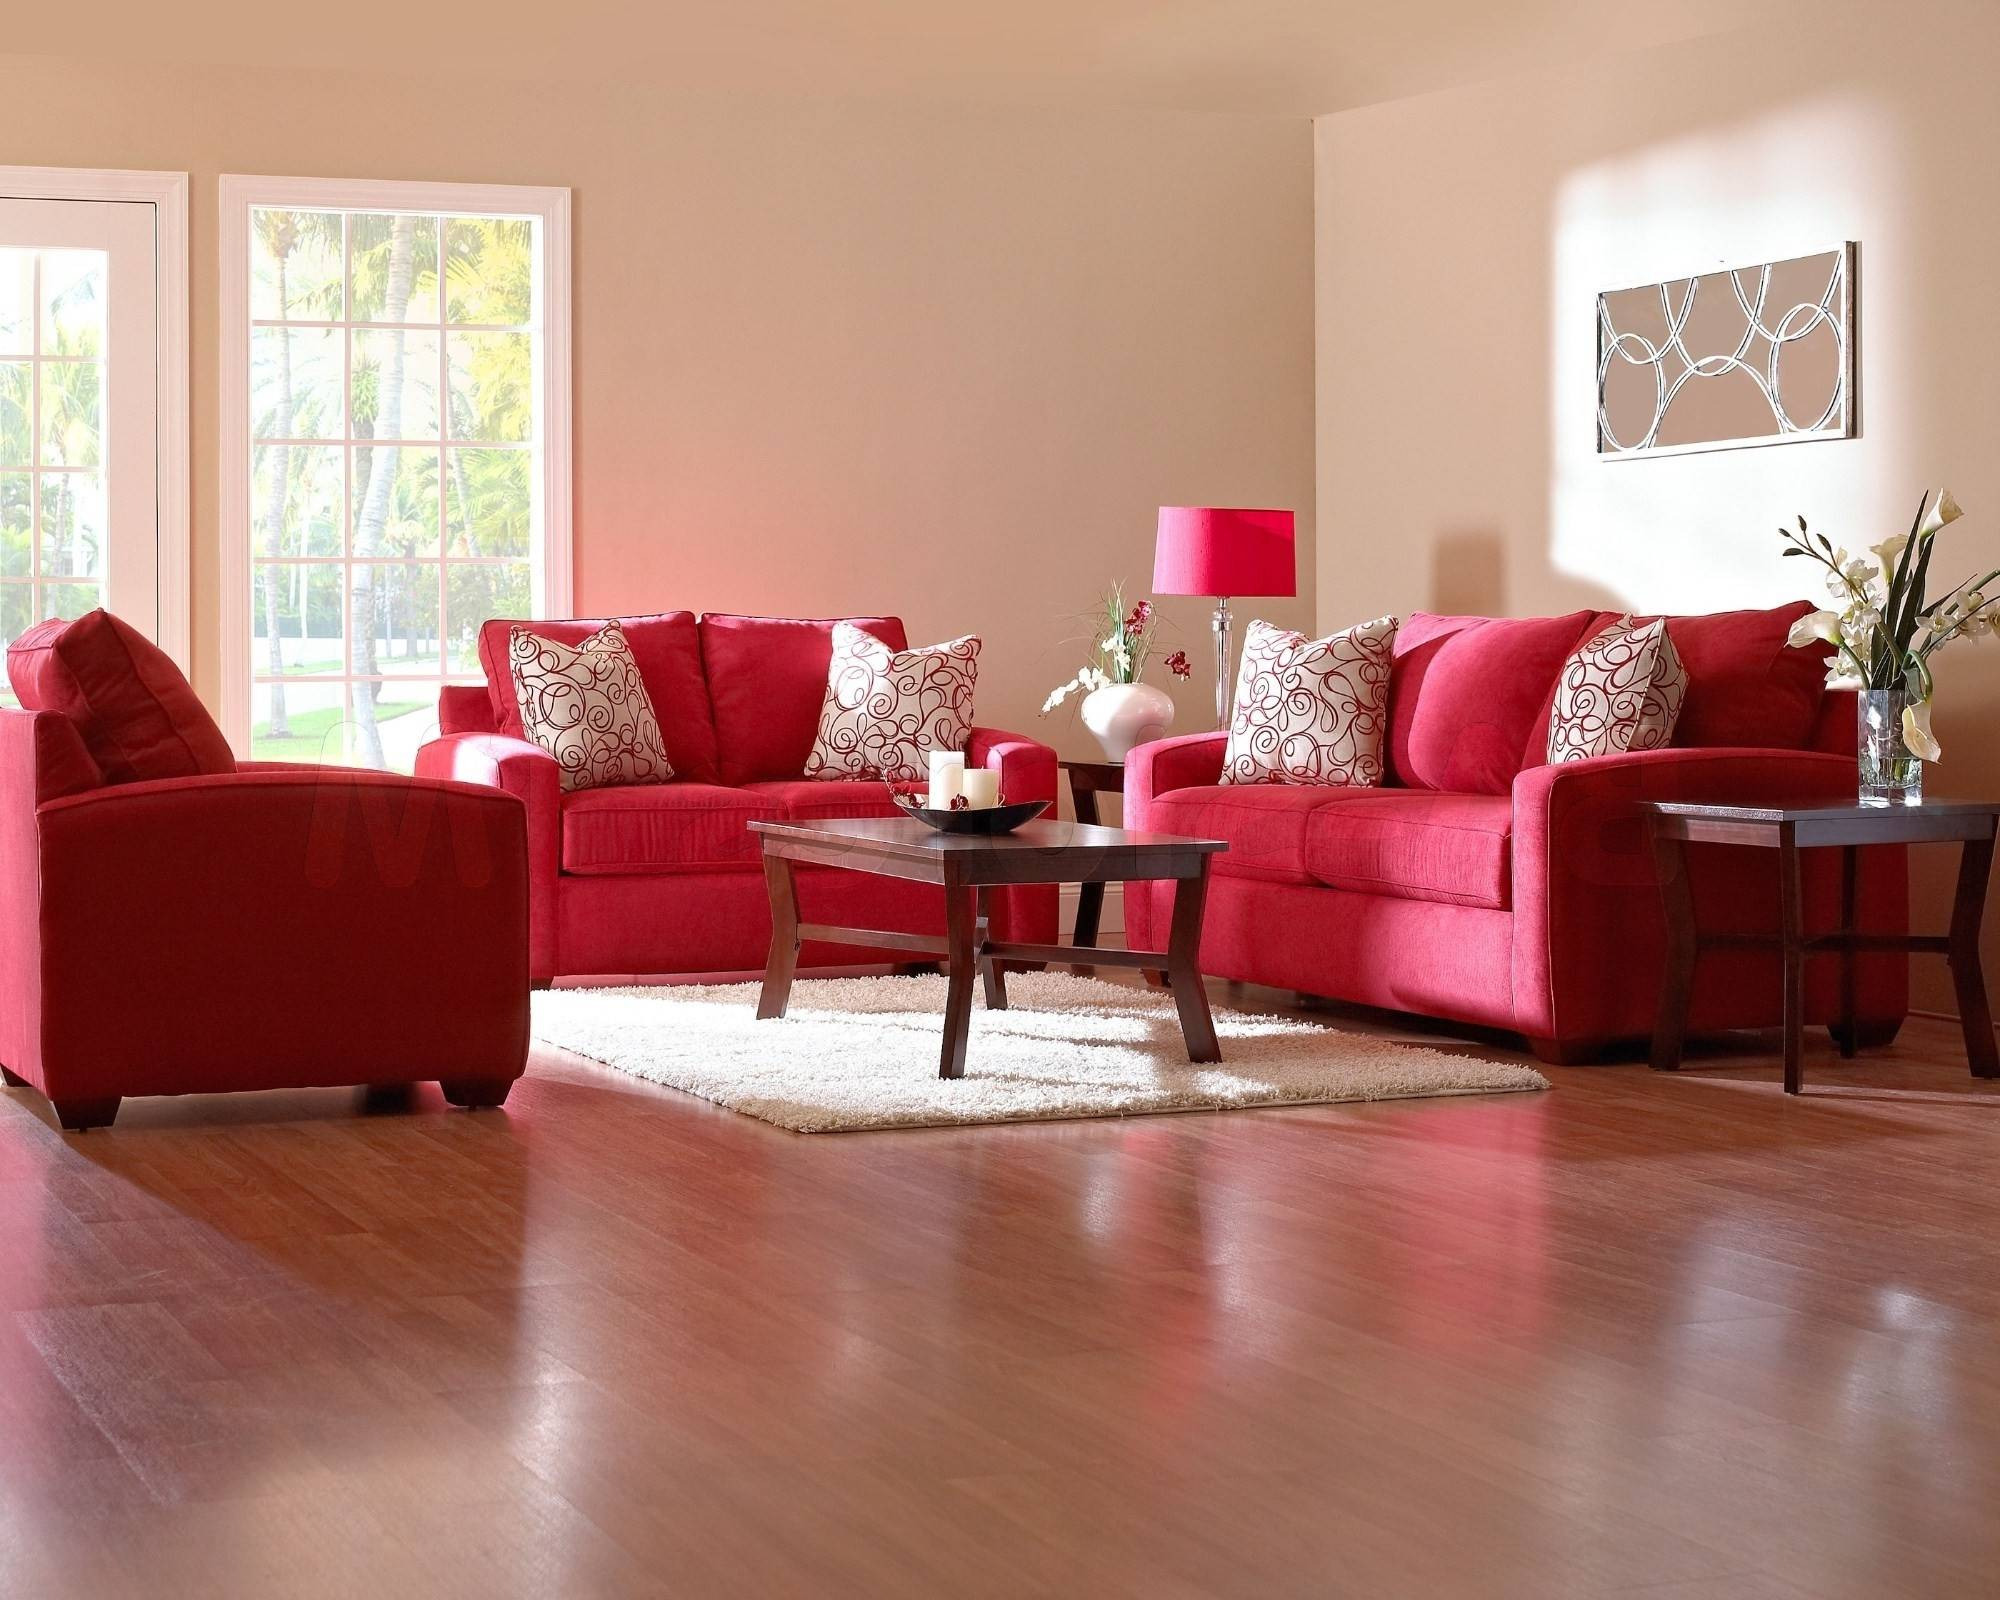 Awesome 27 Images Red Couch Living Room Design Ideas Homes Decor